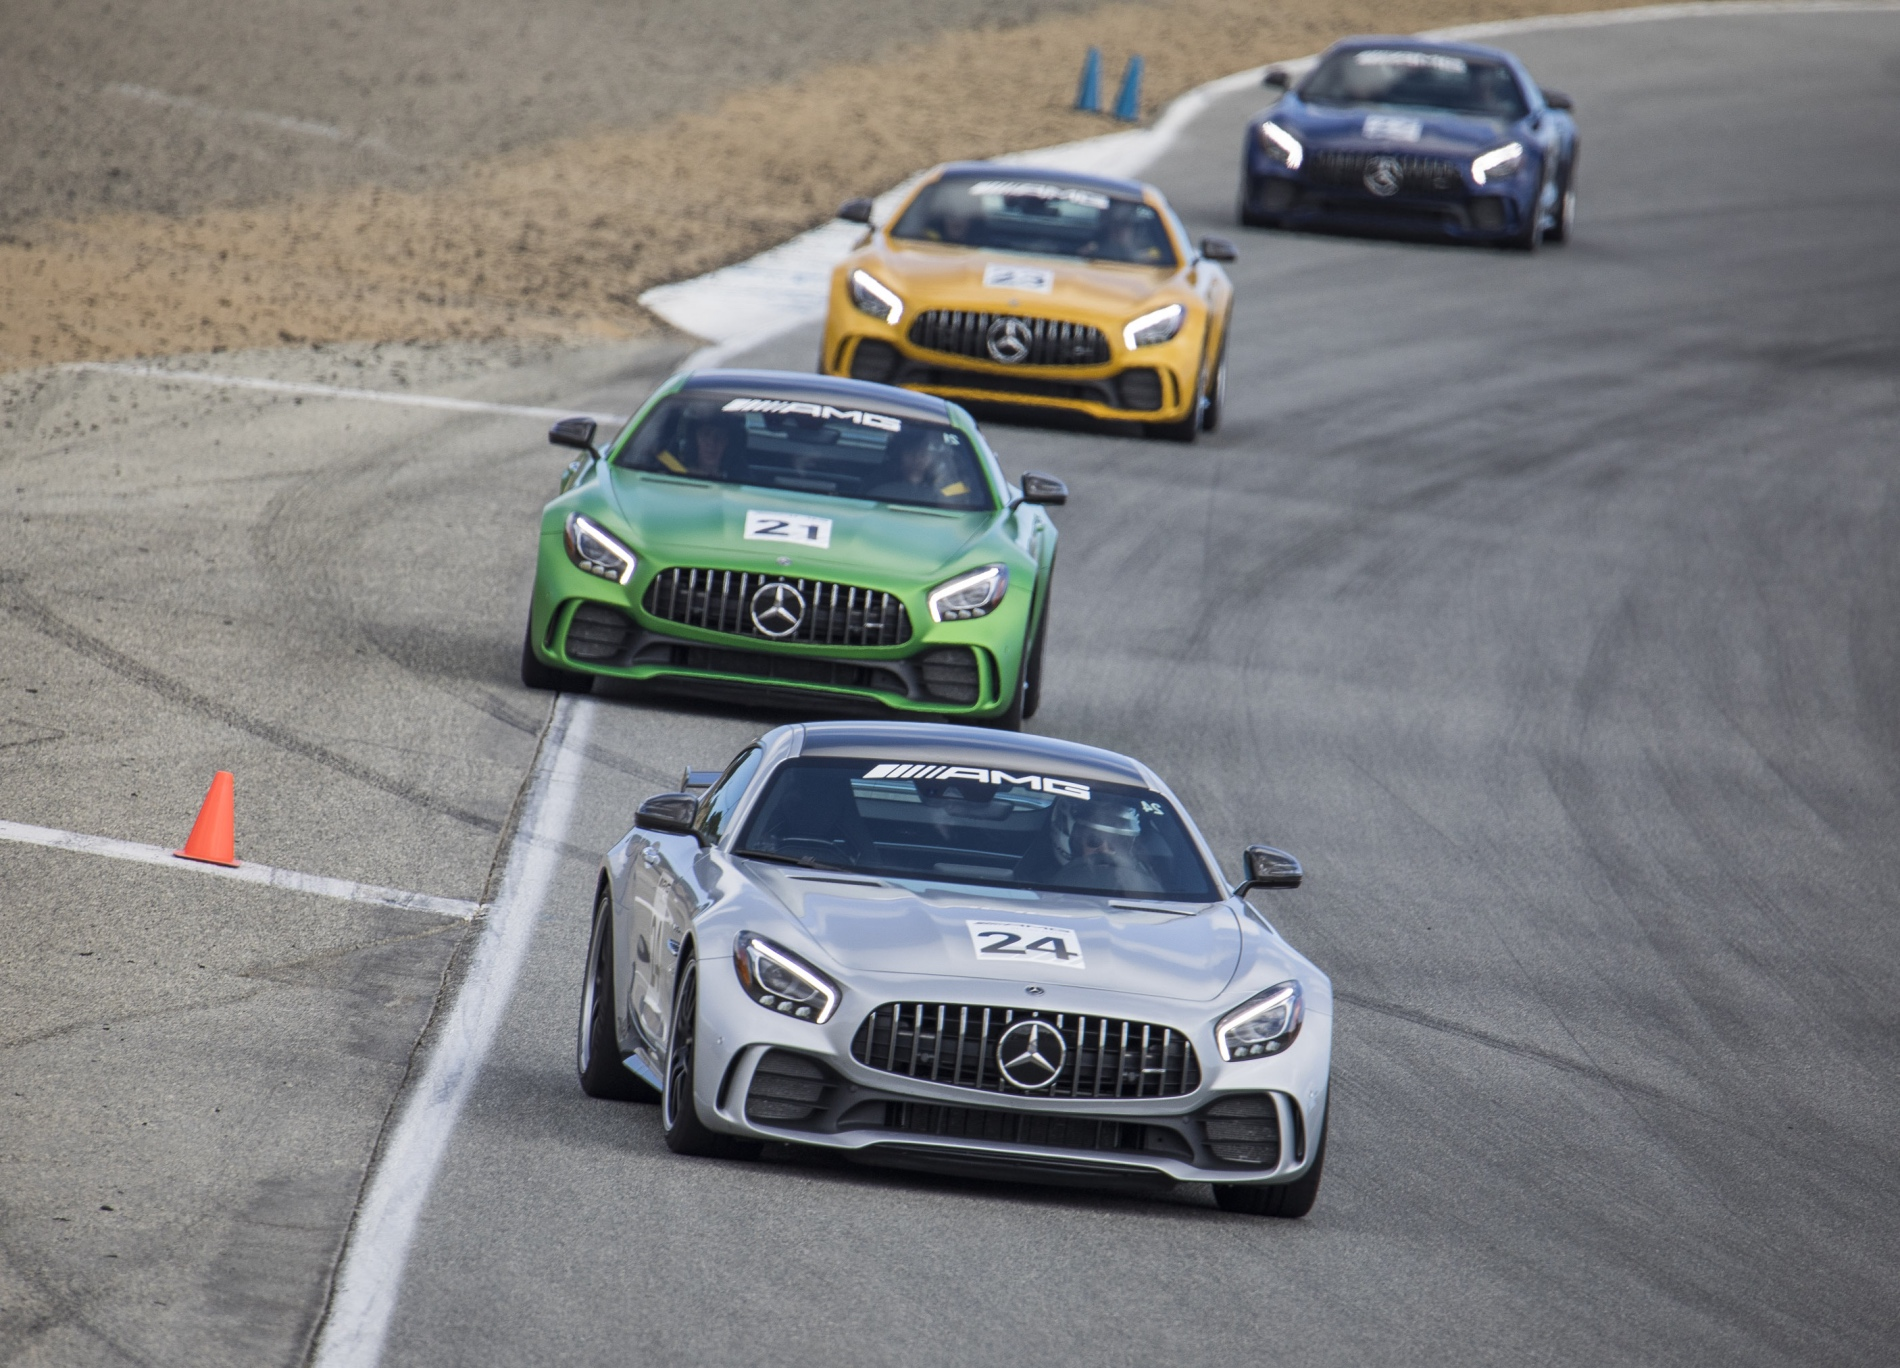 a82be895b0 ... all buyers of AMG® vehicles a complimentary day at AMG® Driving Academy  at one of four racetracks across the United States including WeatherTech  Raceway ...